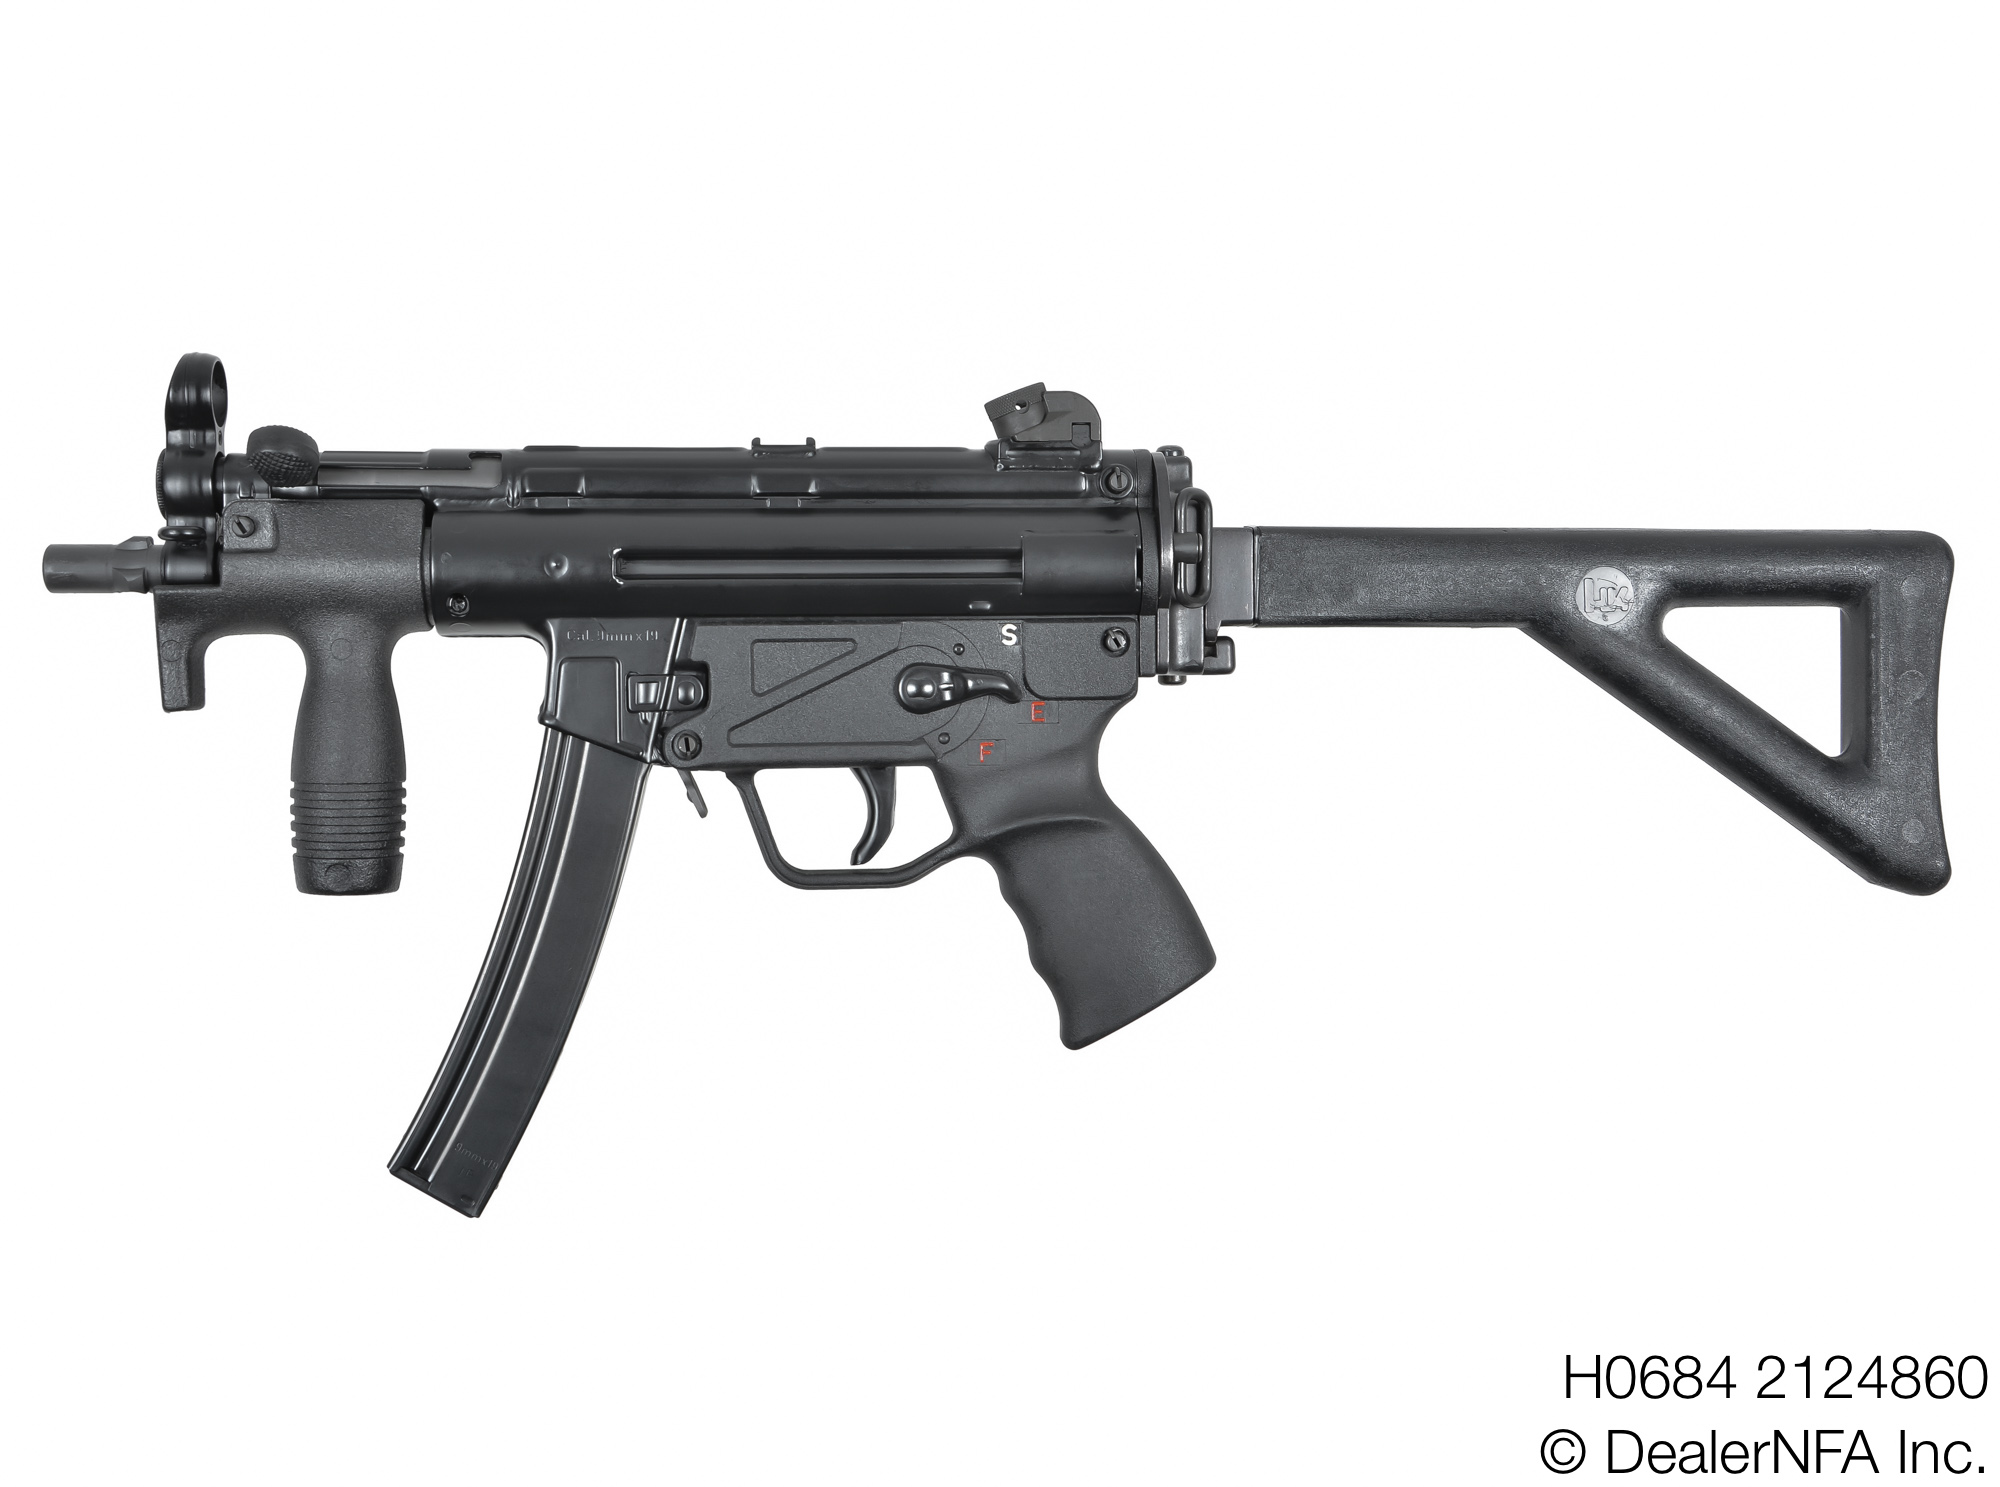 Lets talk HK Sear host options and prices please-h0684_2124860_fleming_firearms_hk_-_0022x.jpg